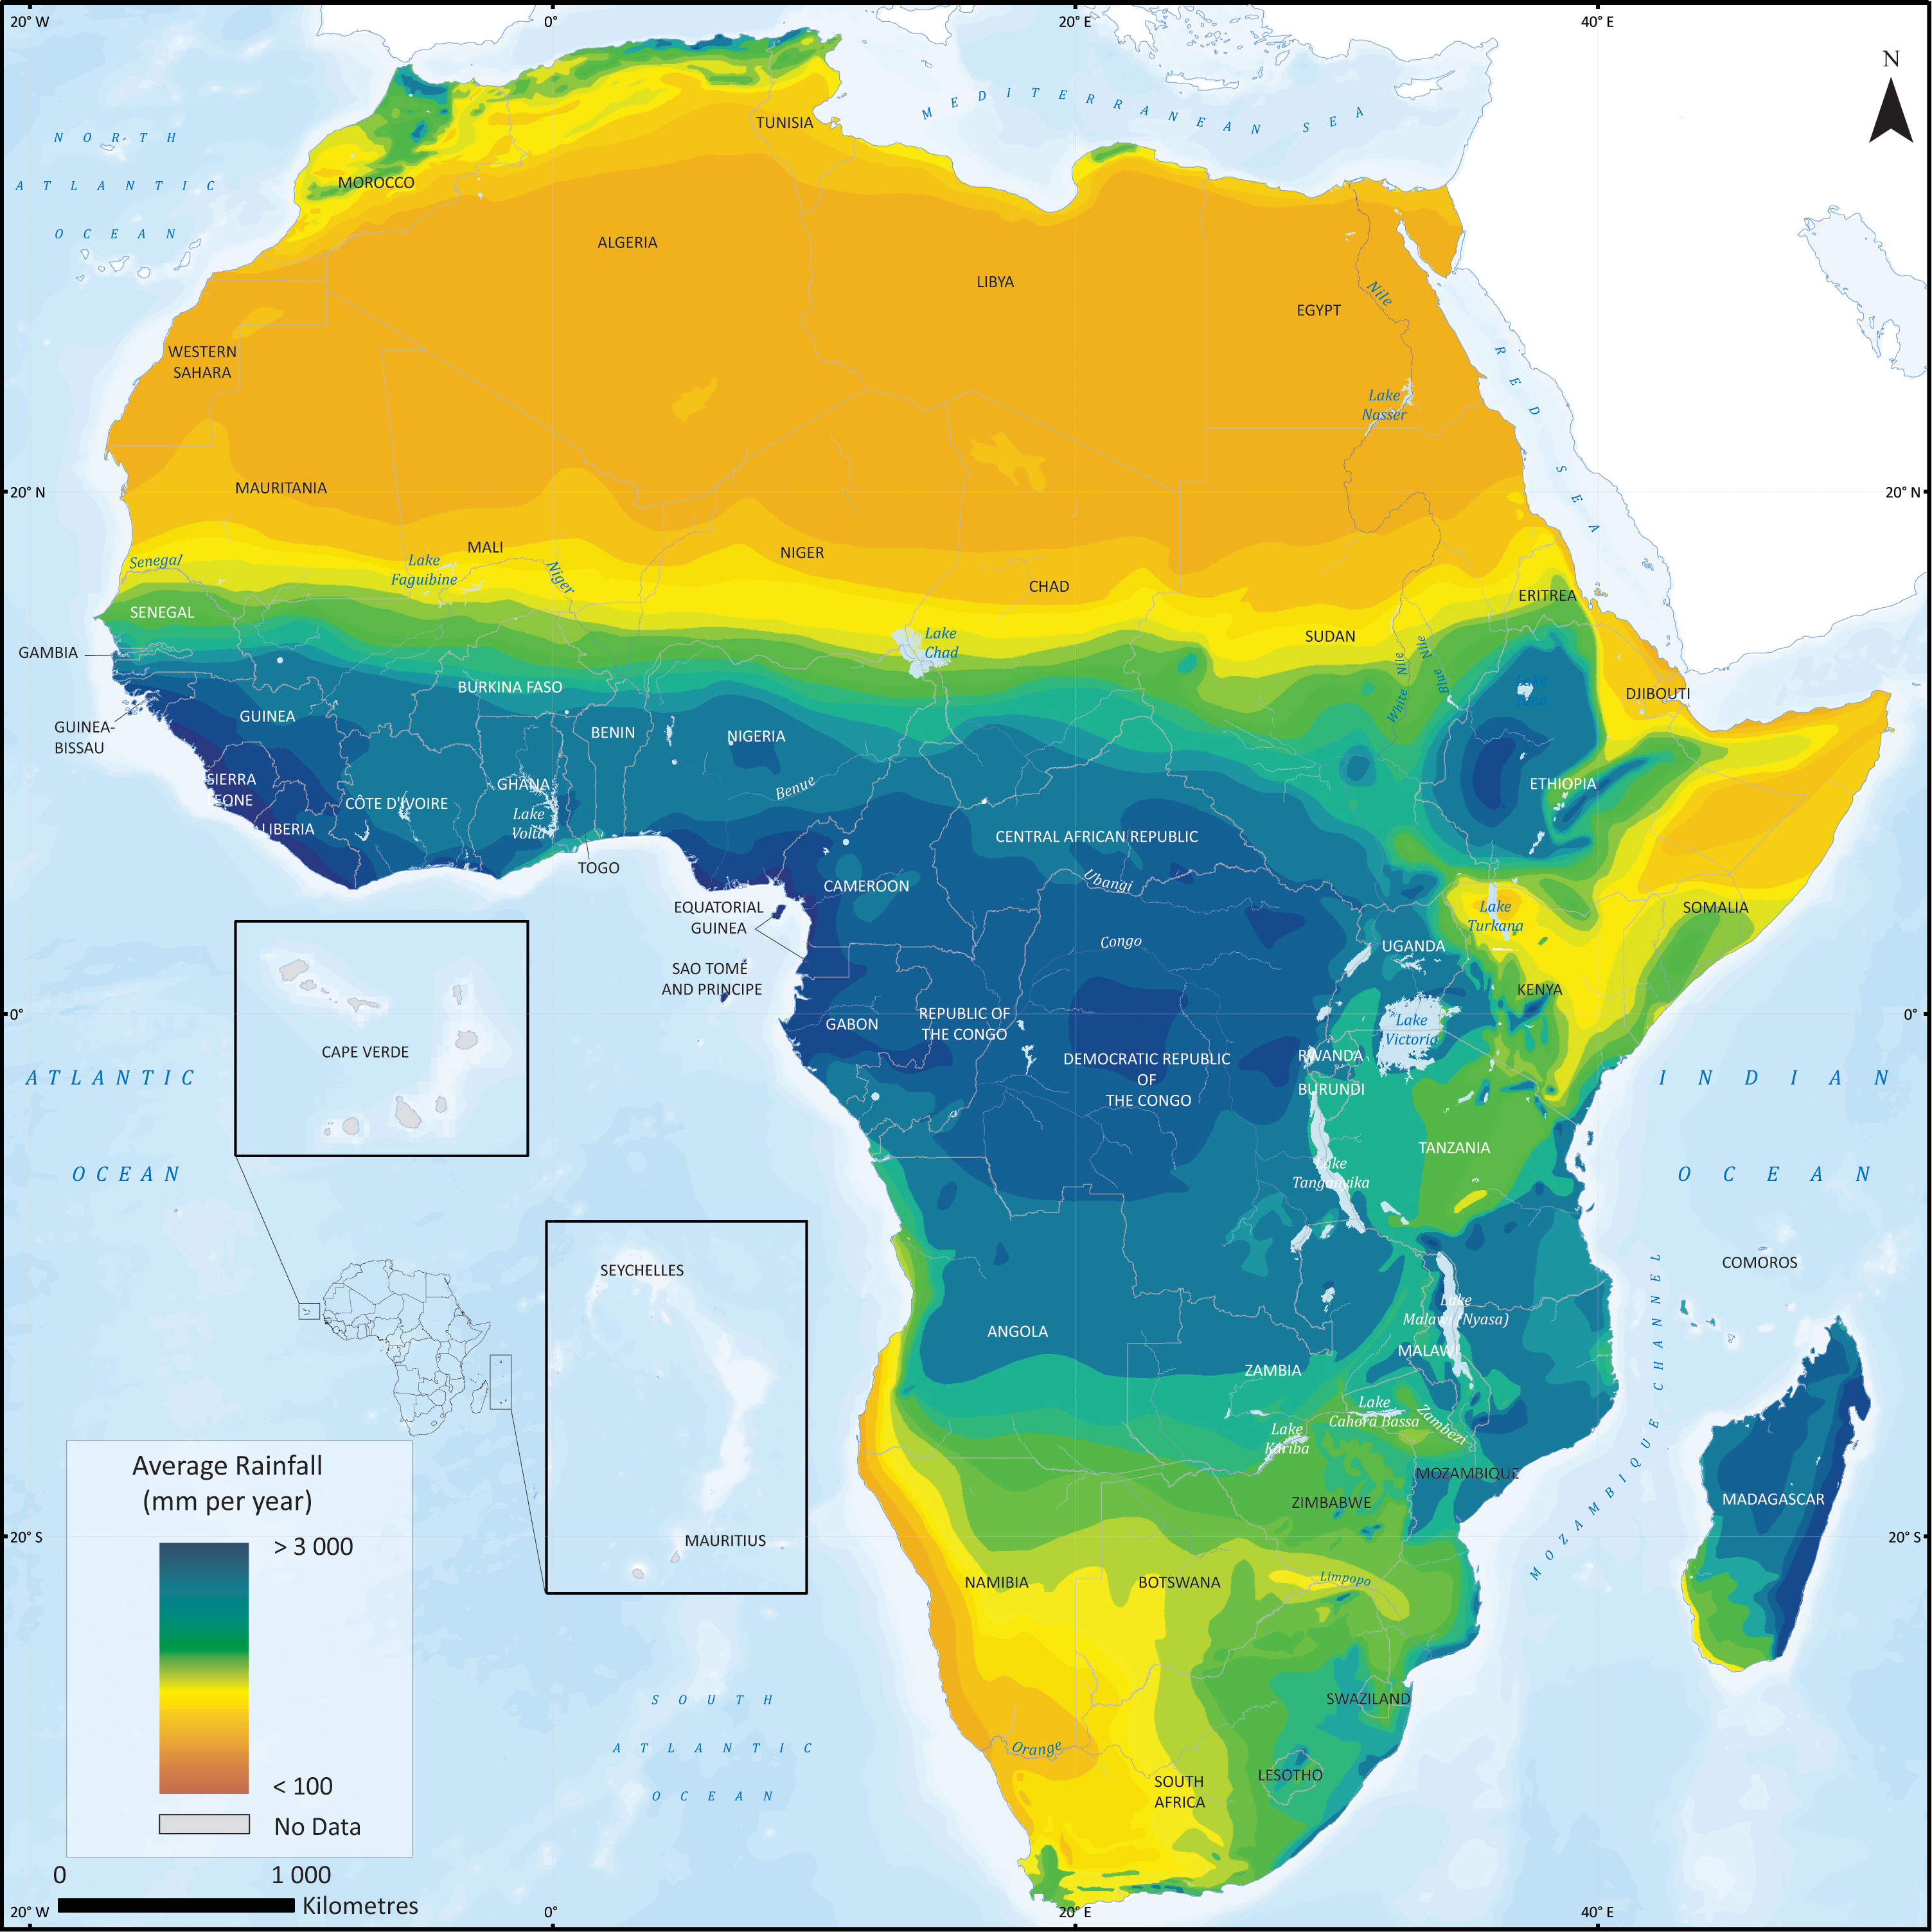 https://na.unep.net/atlas/africaWater/images/maps/pngs/annual_average_rainfall.png